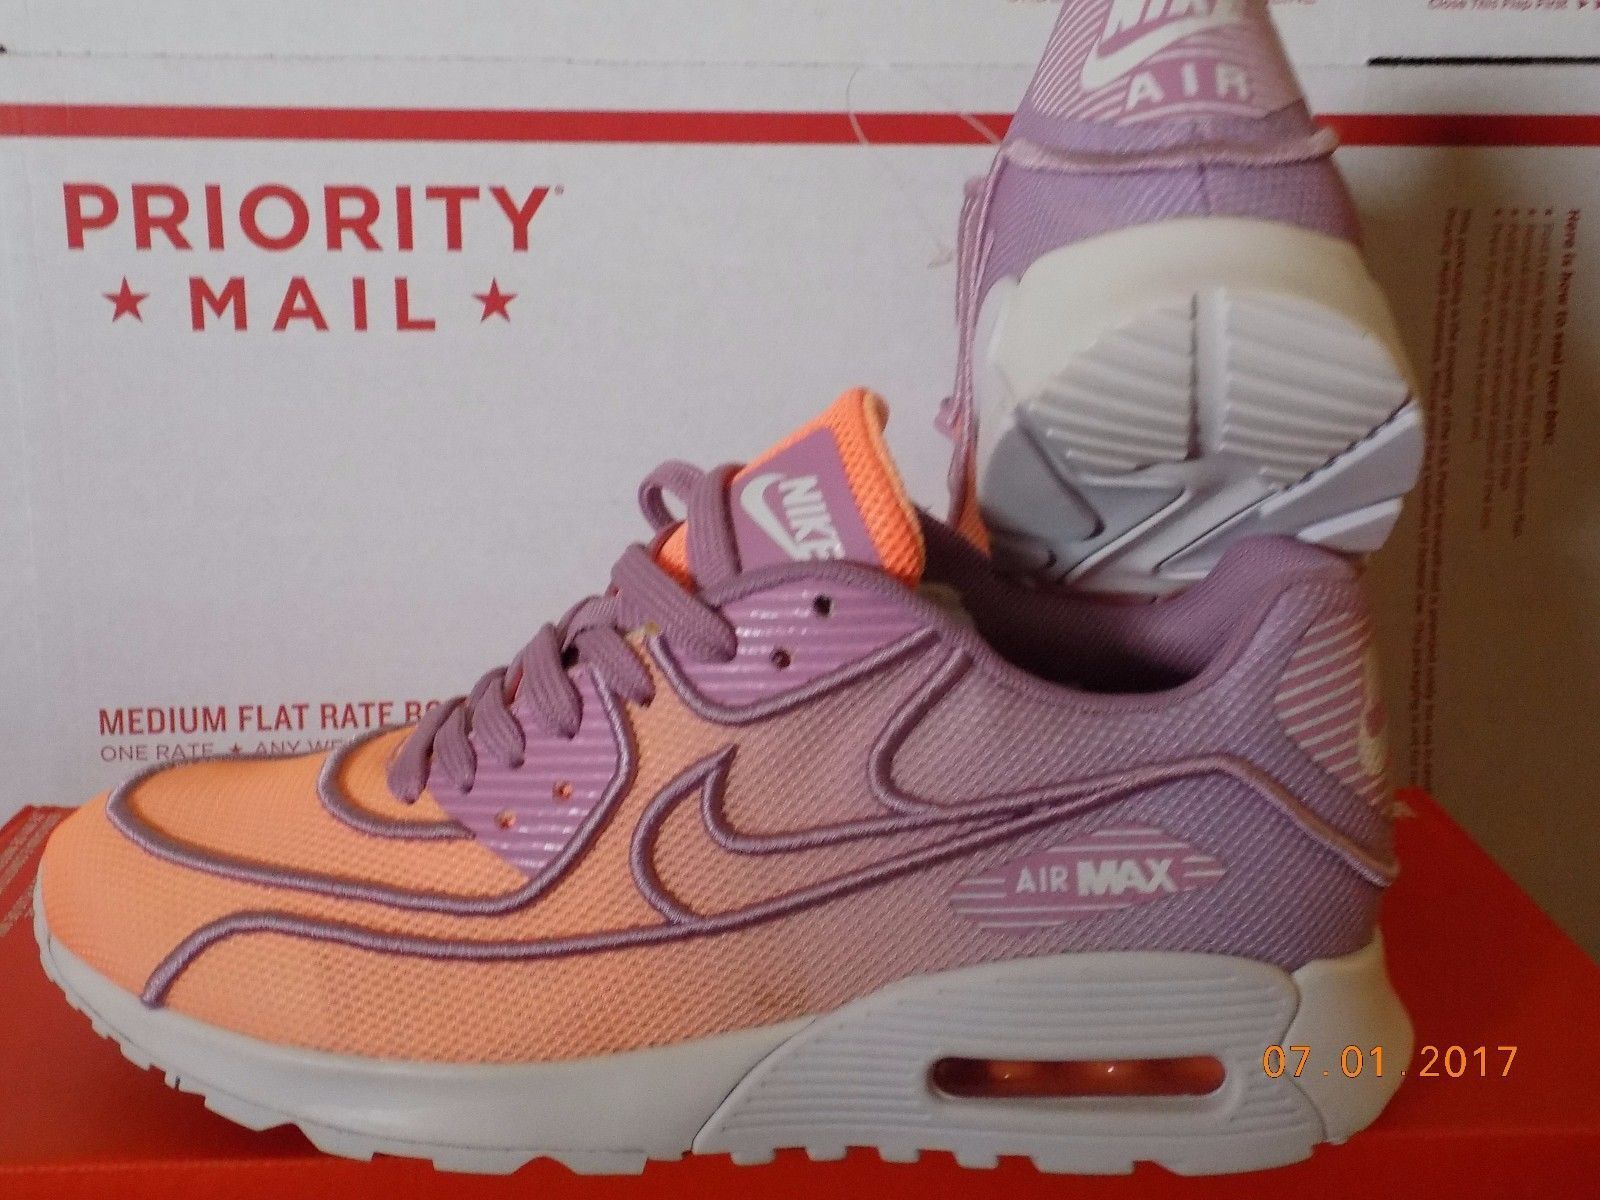 separation shoes 9bbb2 8467d NIKE NIKE NIKE AIR MAX 90 ULTRA 2.0 SI WOMEN SIZE 7 NEW With NIKE BOX